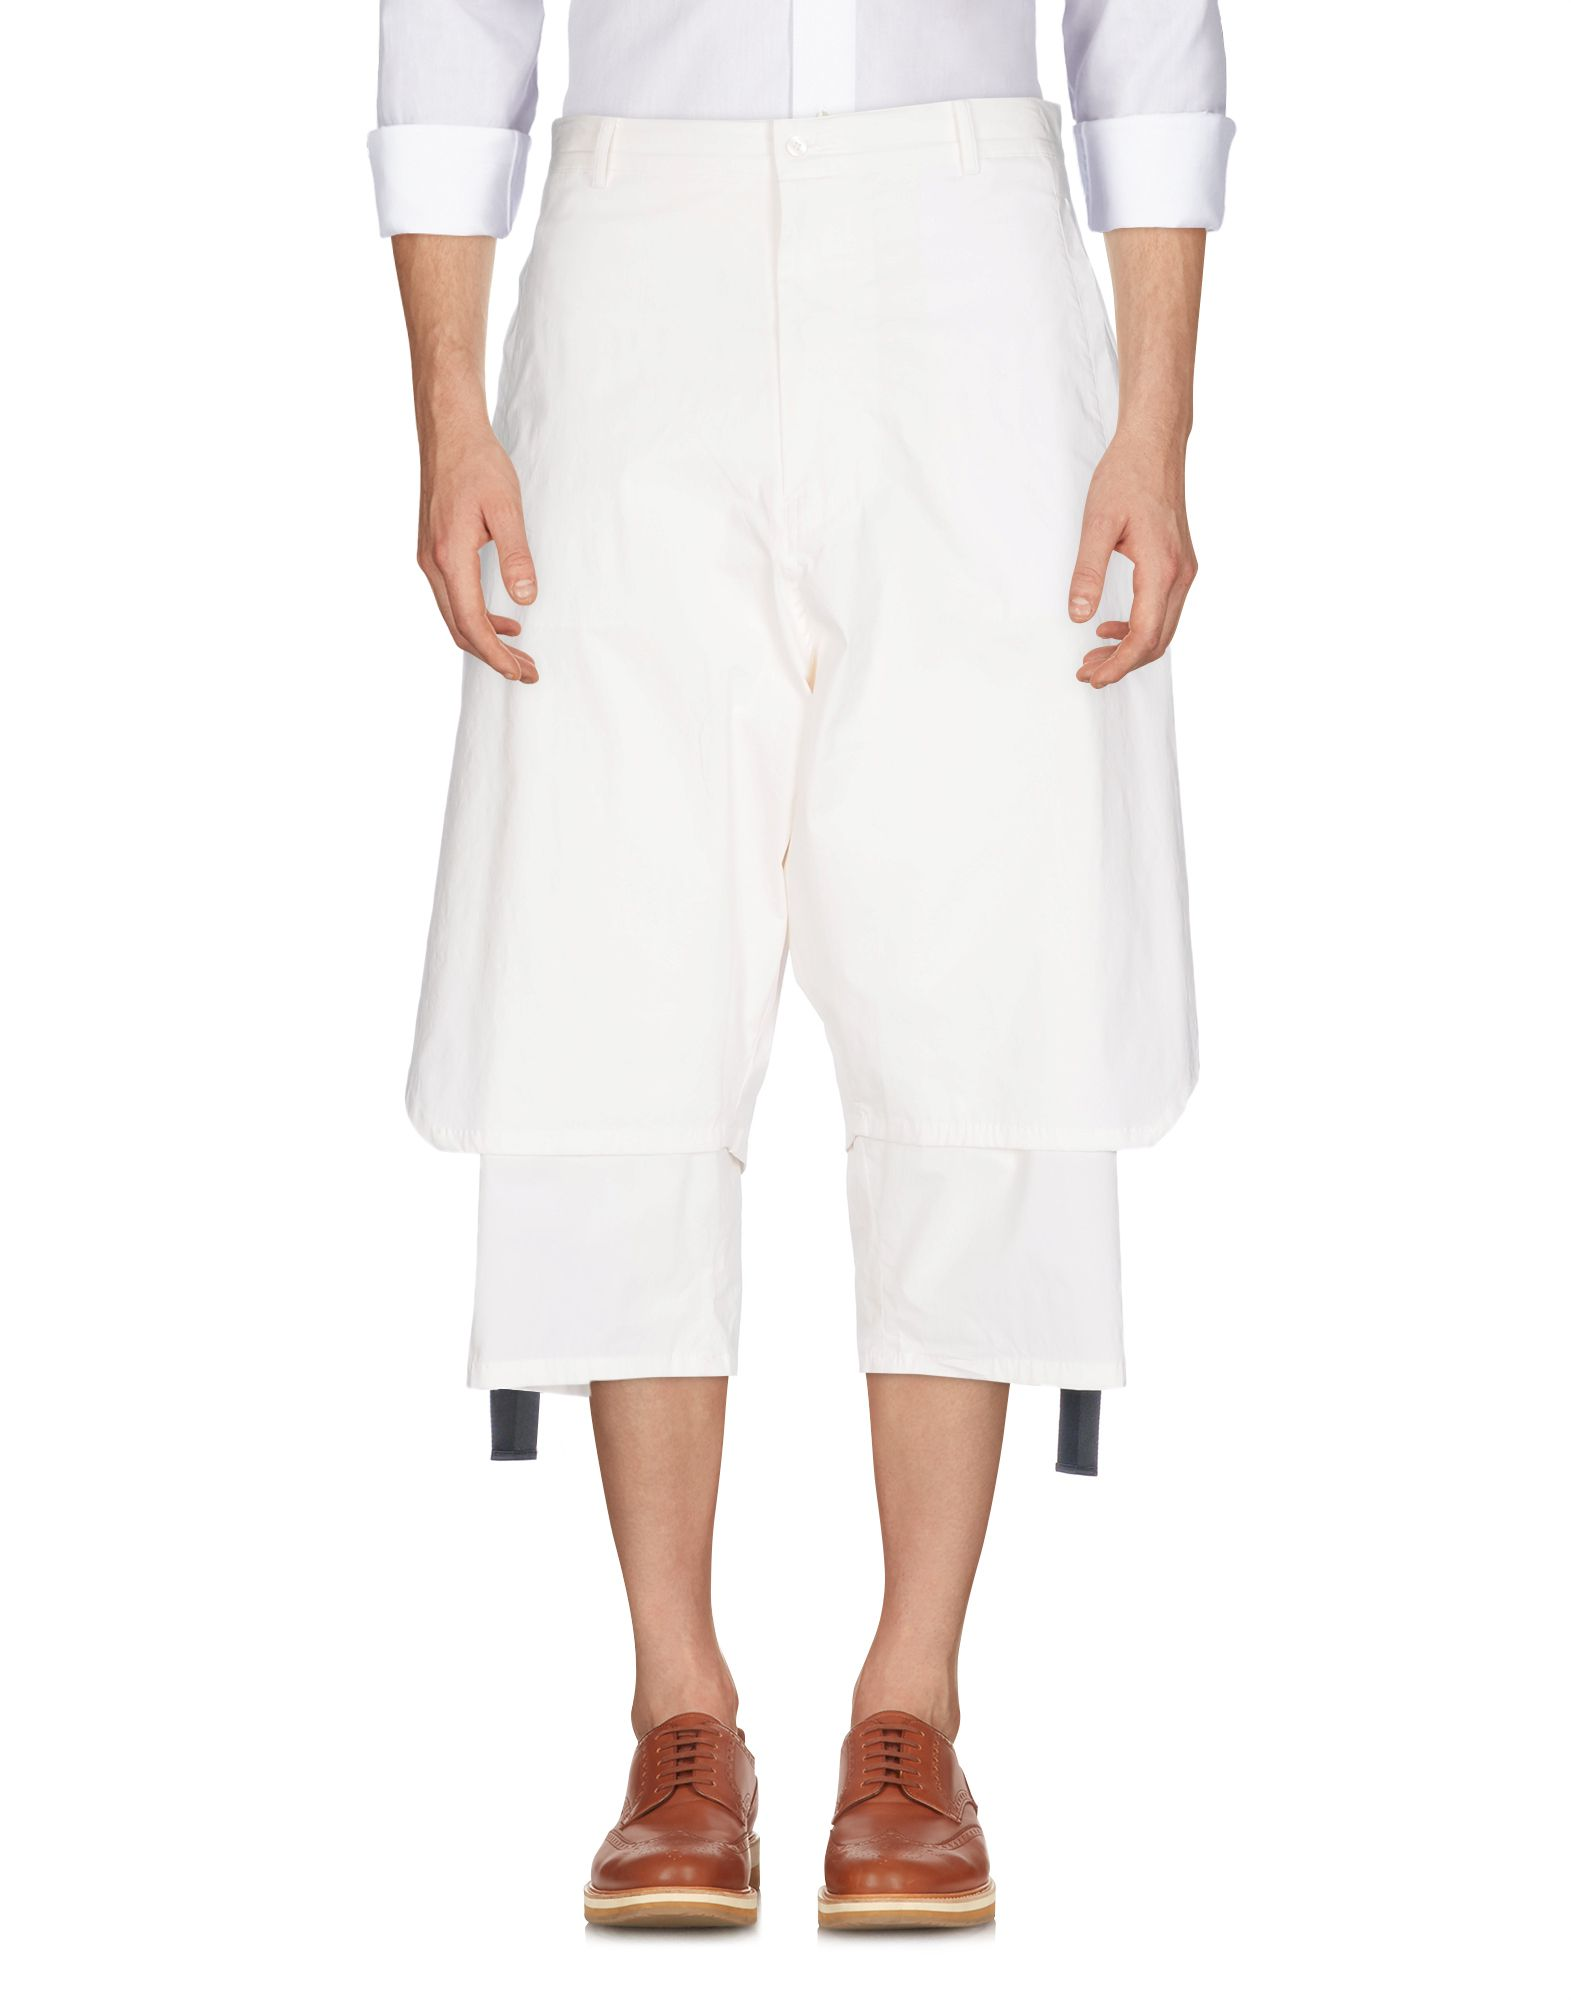 Pantalone Capri D.Gnak By Kang.D Uomo - Acquista online su